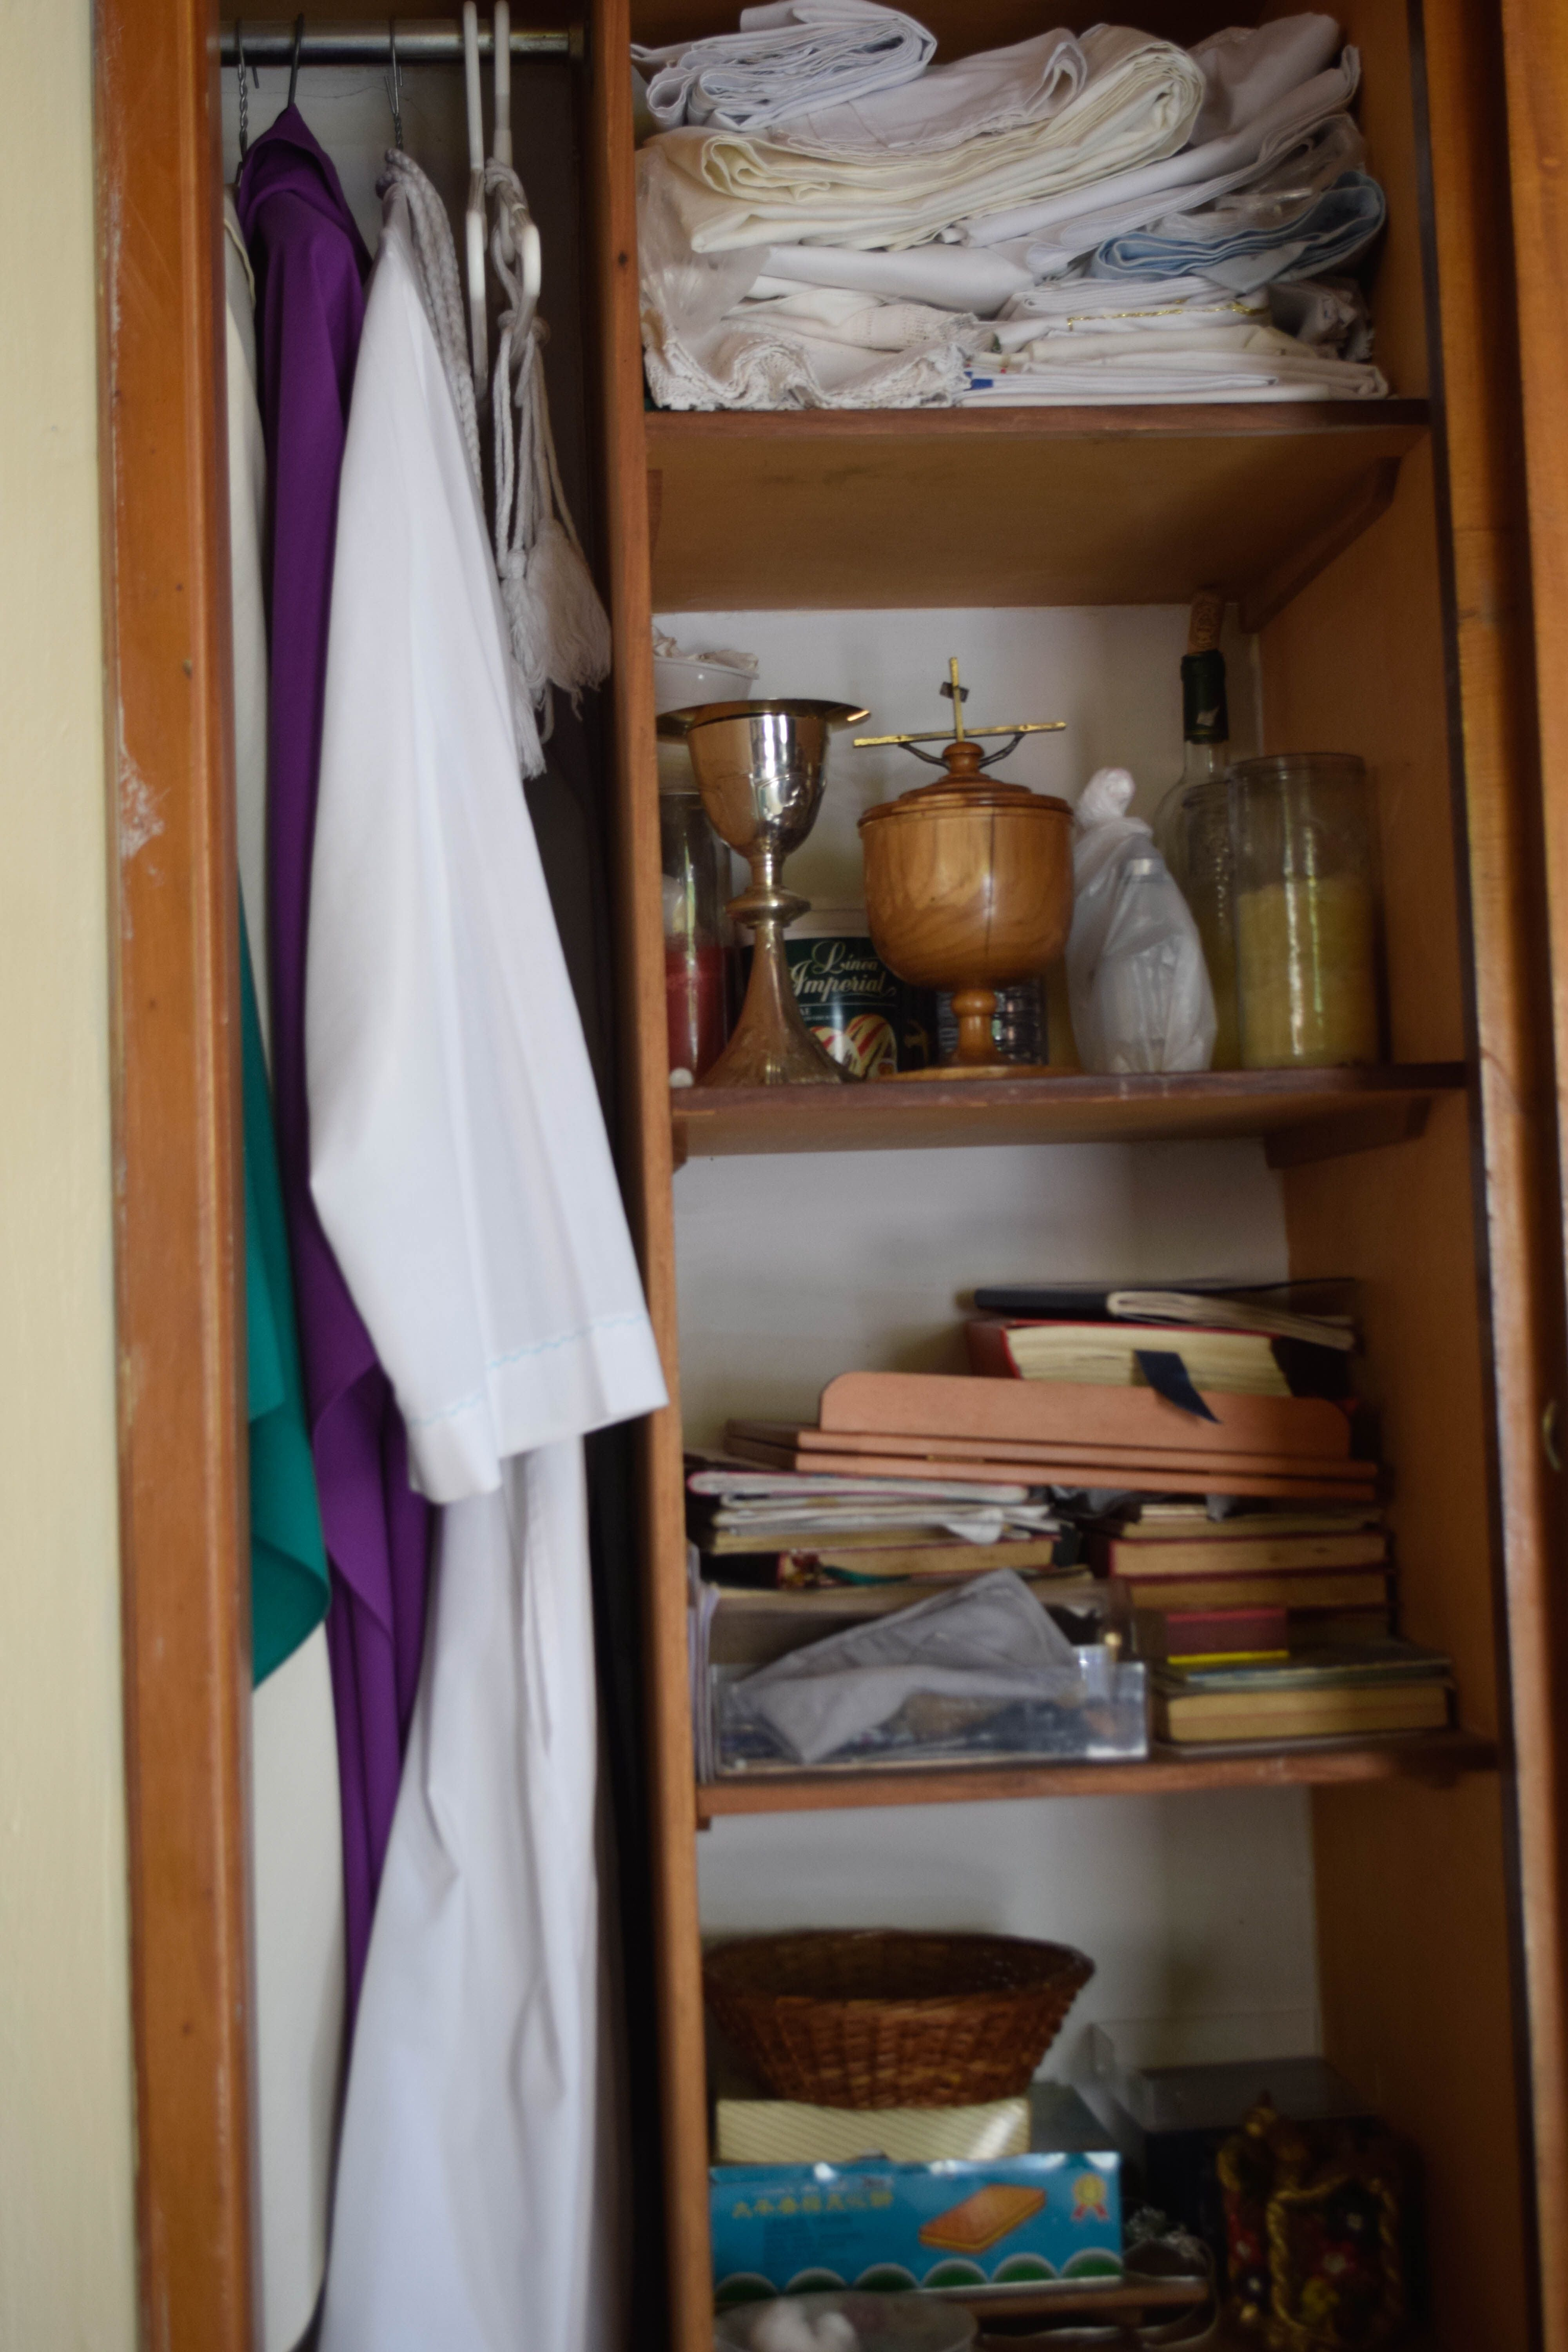 Shelf in Capilla de El Pedregal